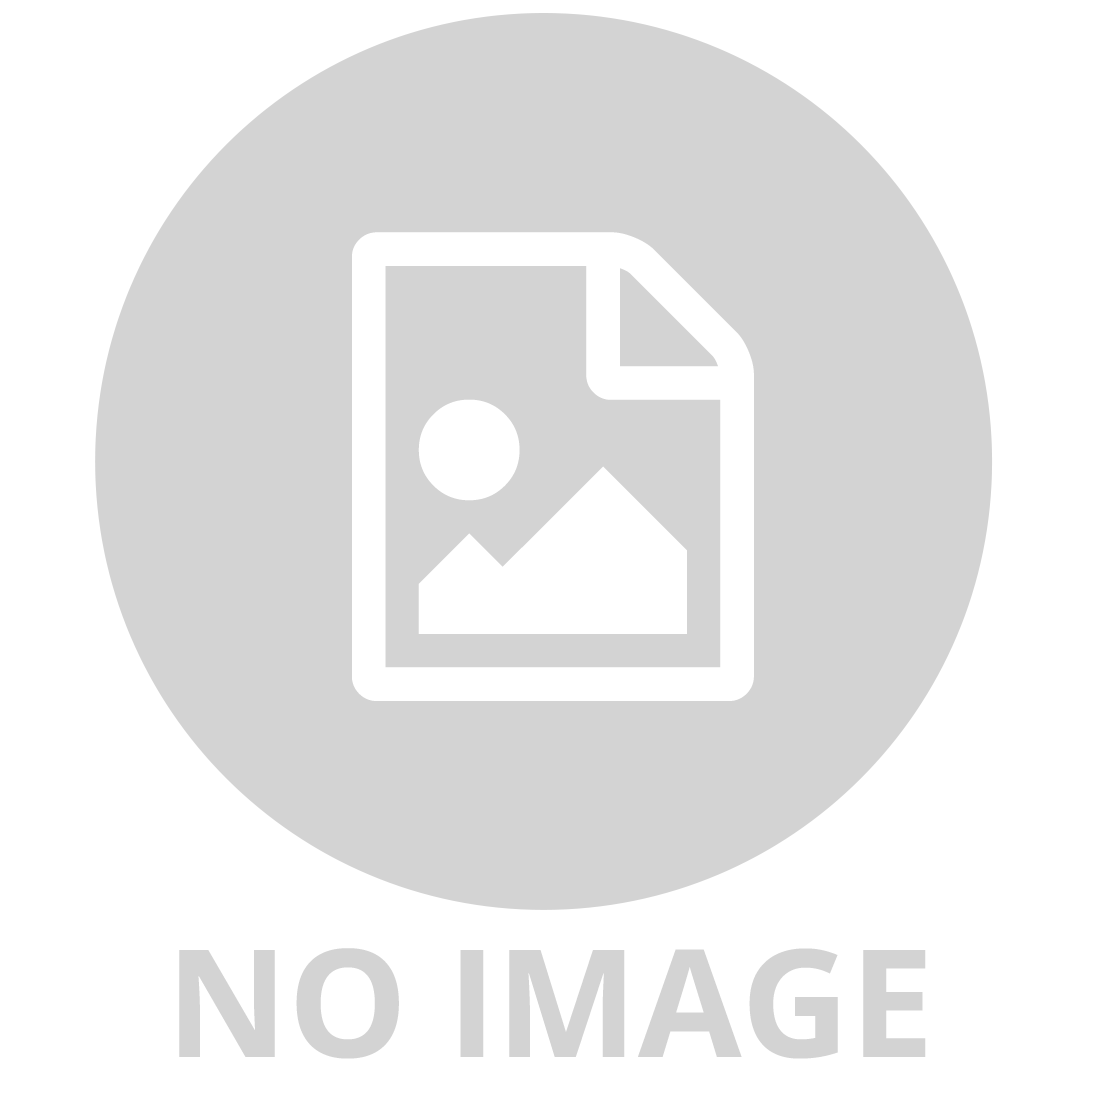 ORCHARD JIGSAW 20 PC MATCH & COUNT PUZZLE GAME